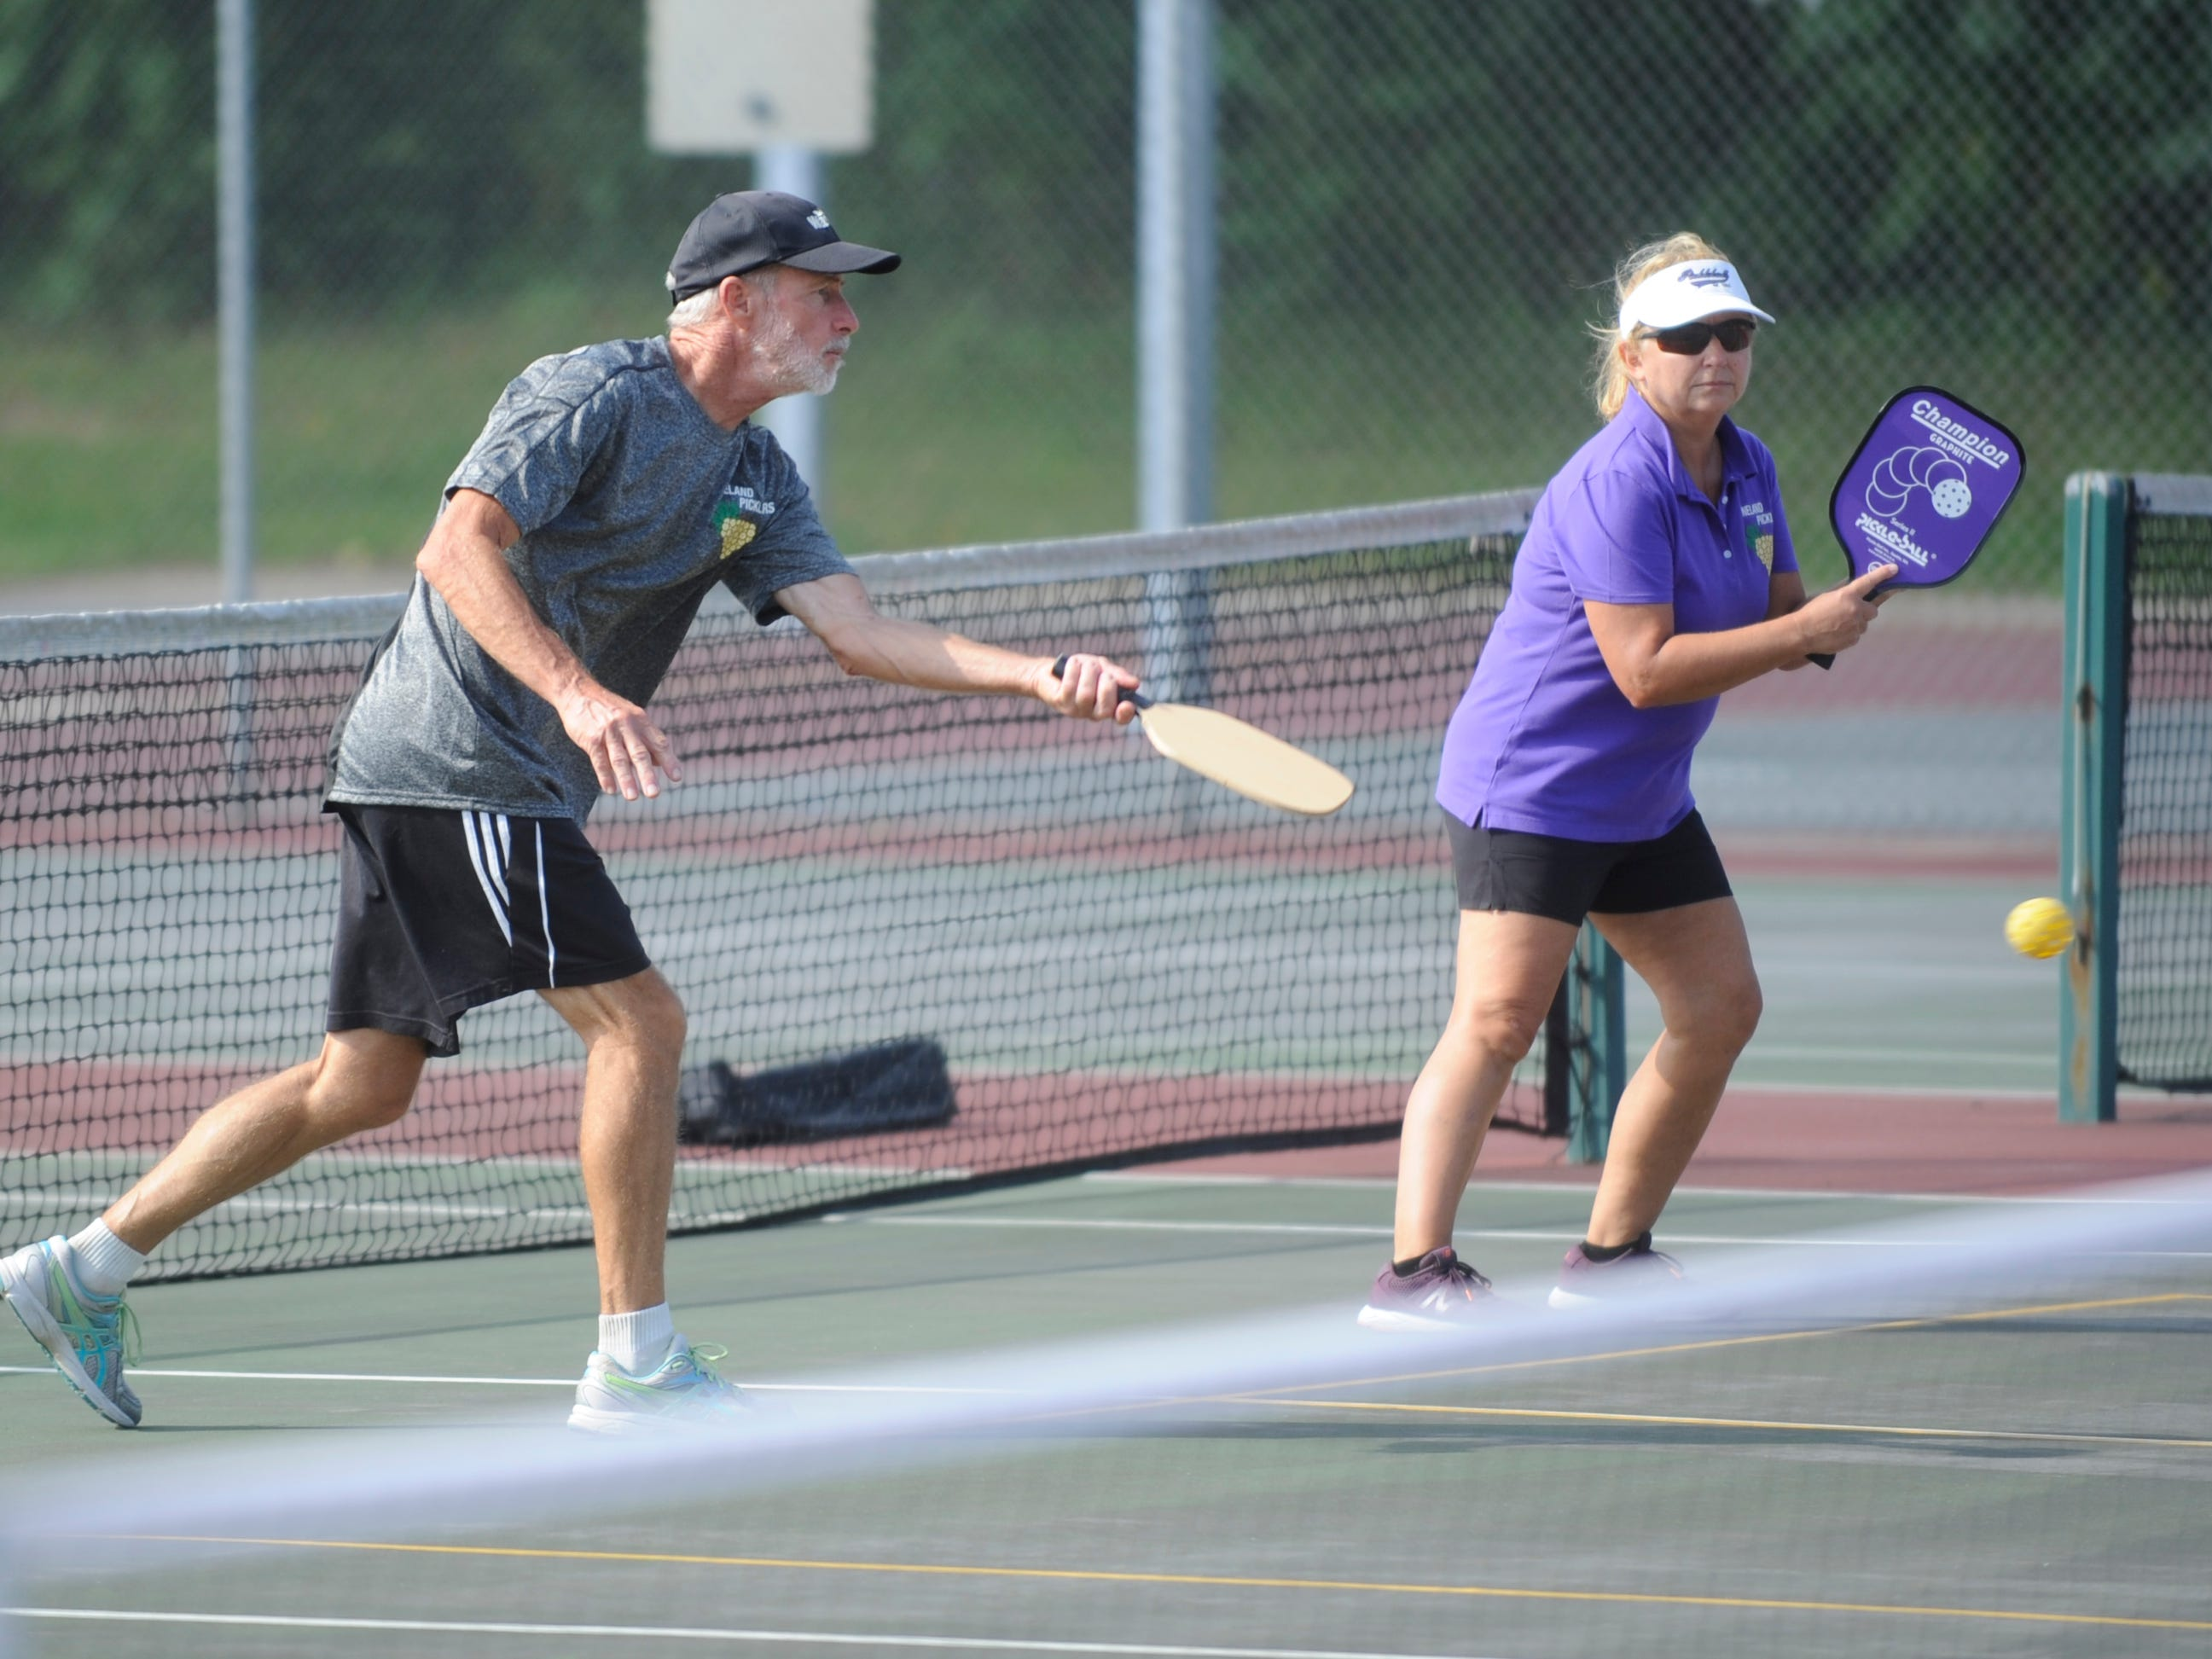 Bill Hayes, 64, and Marylynne Gravino, both of Vineland, play pickleball at Pagluighi Park on Wednesday, October 3, 2018.